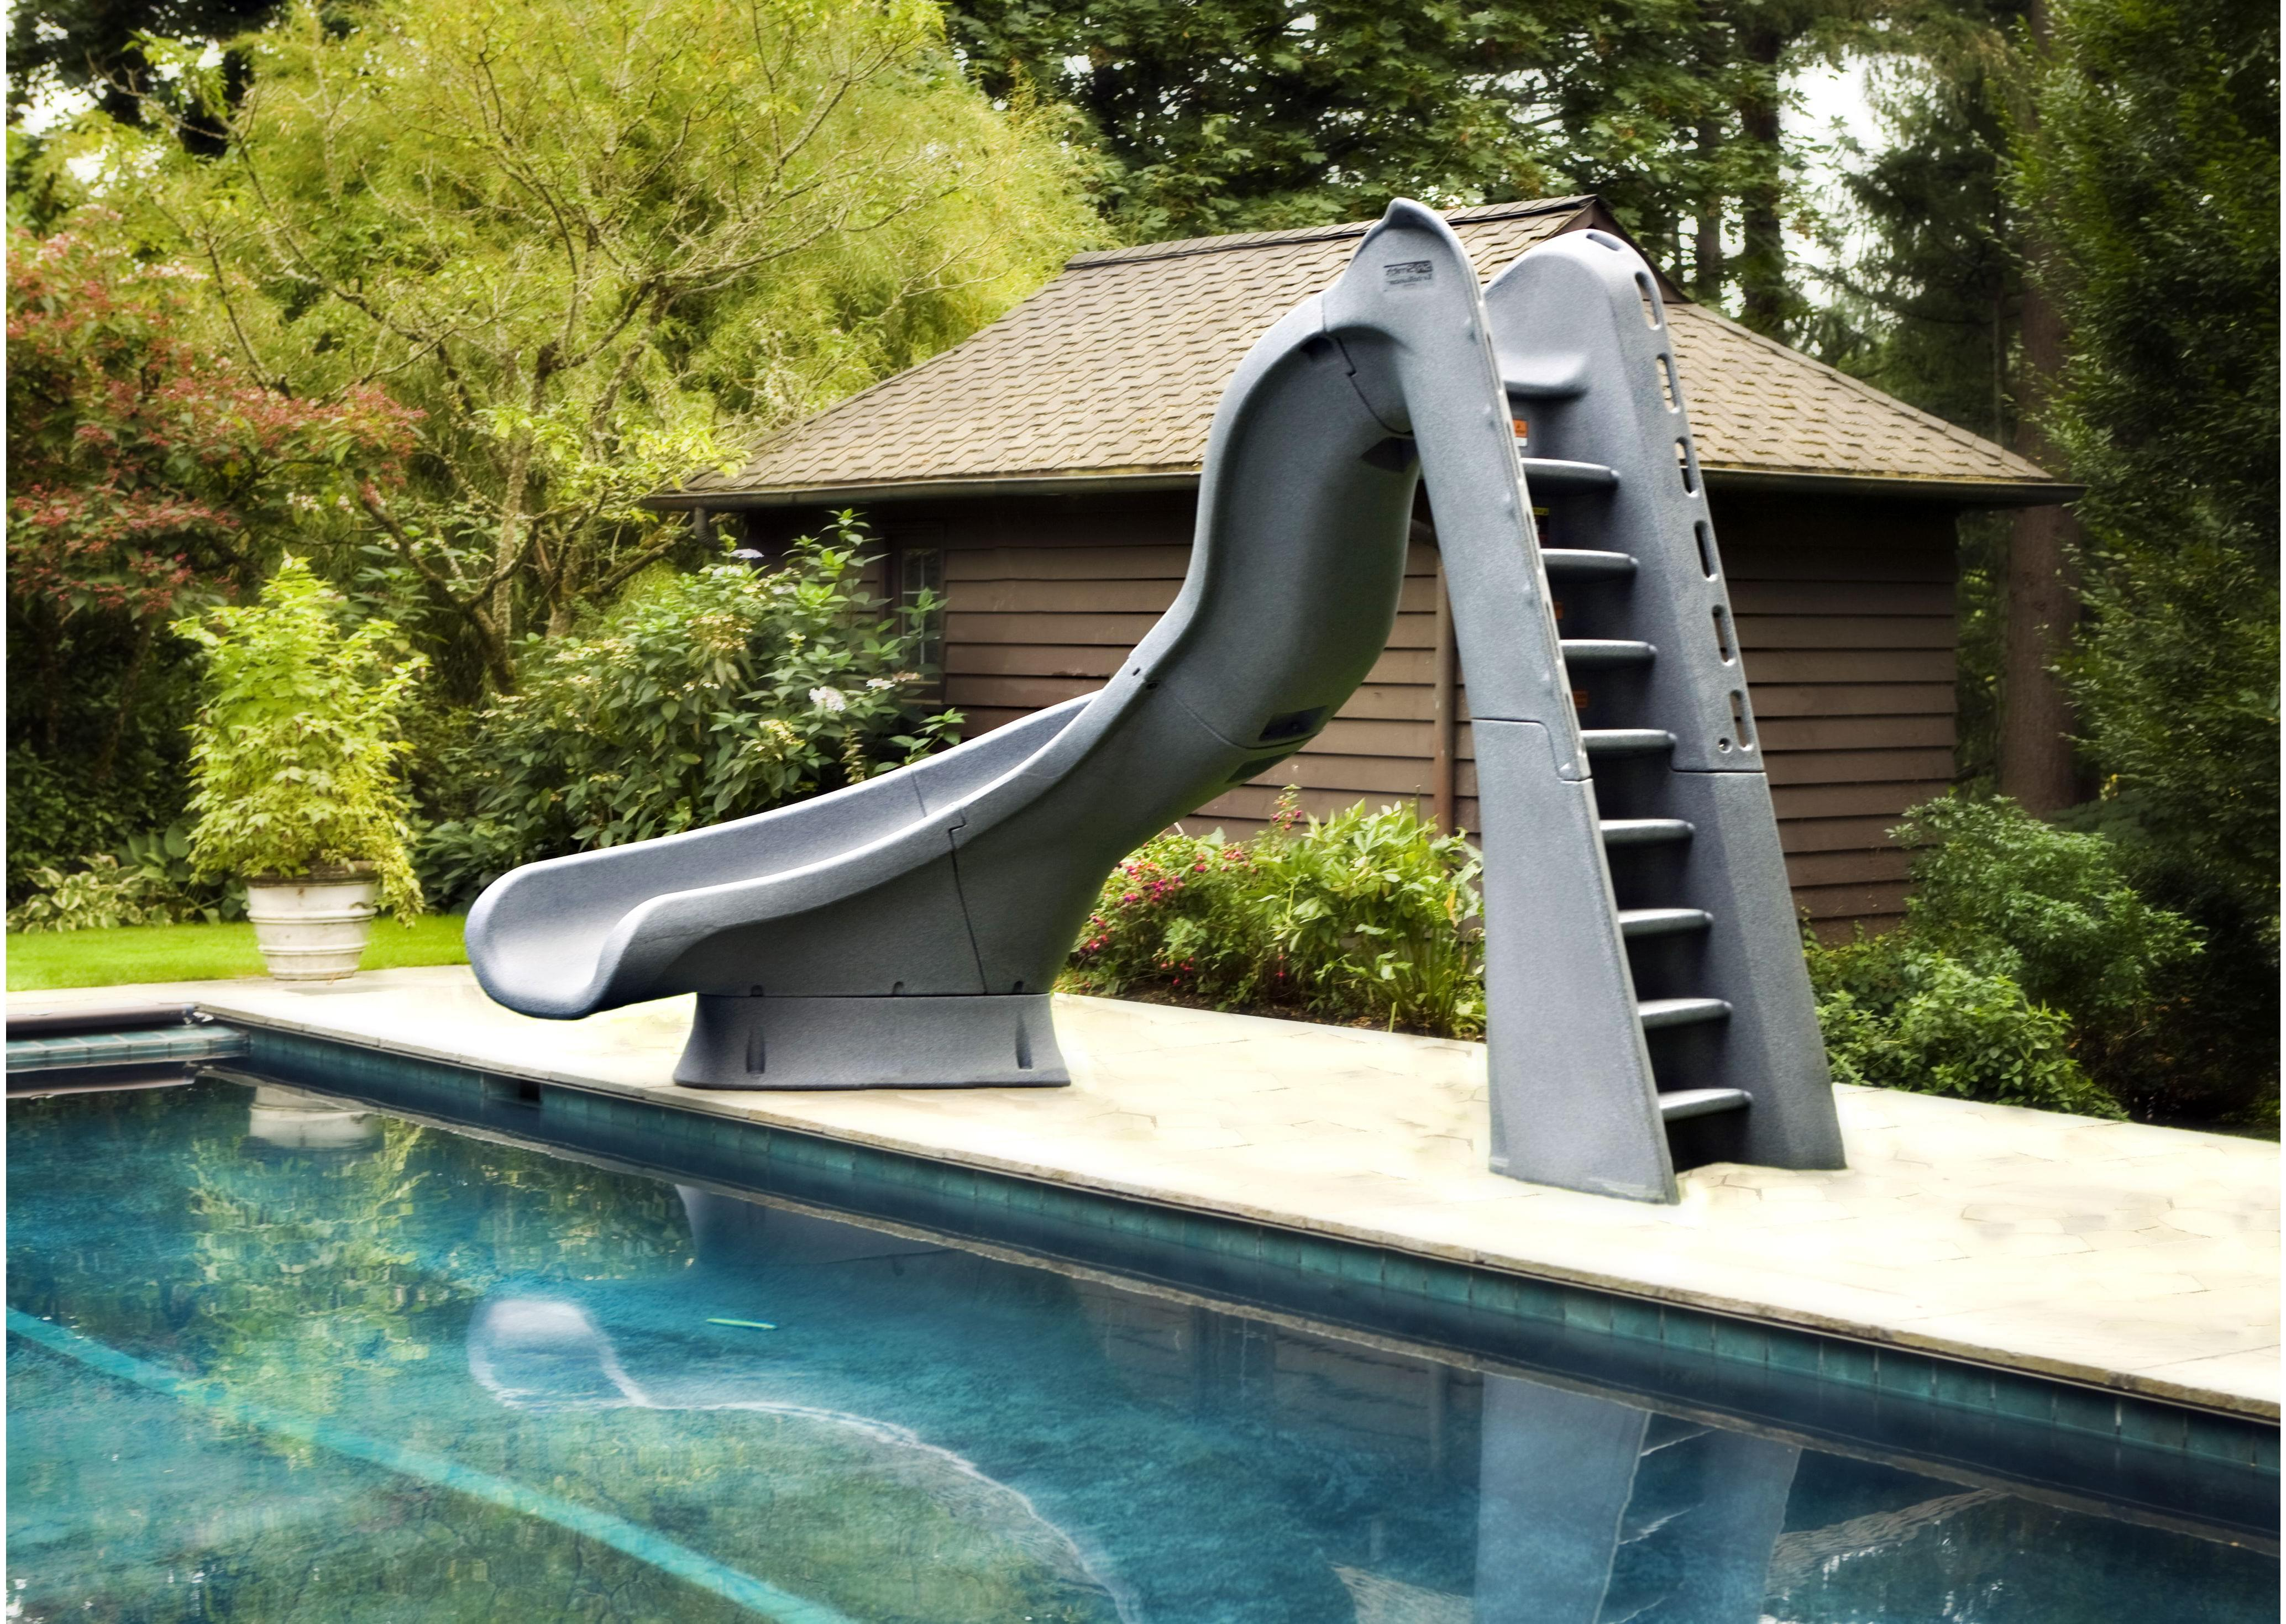 Turbotwister Left Hand Turn Inground Pool Slide Pool Supplies Canada